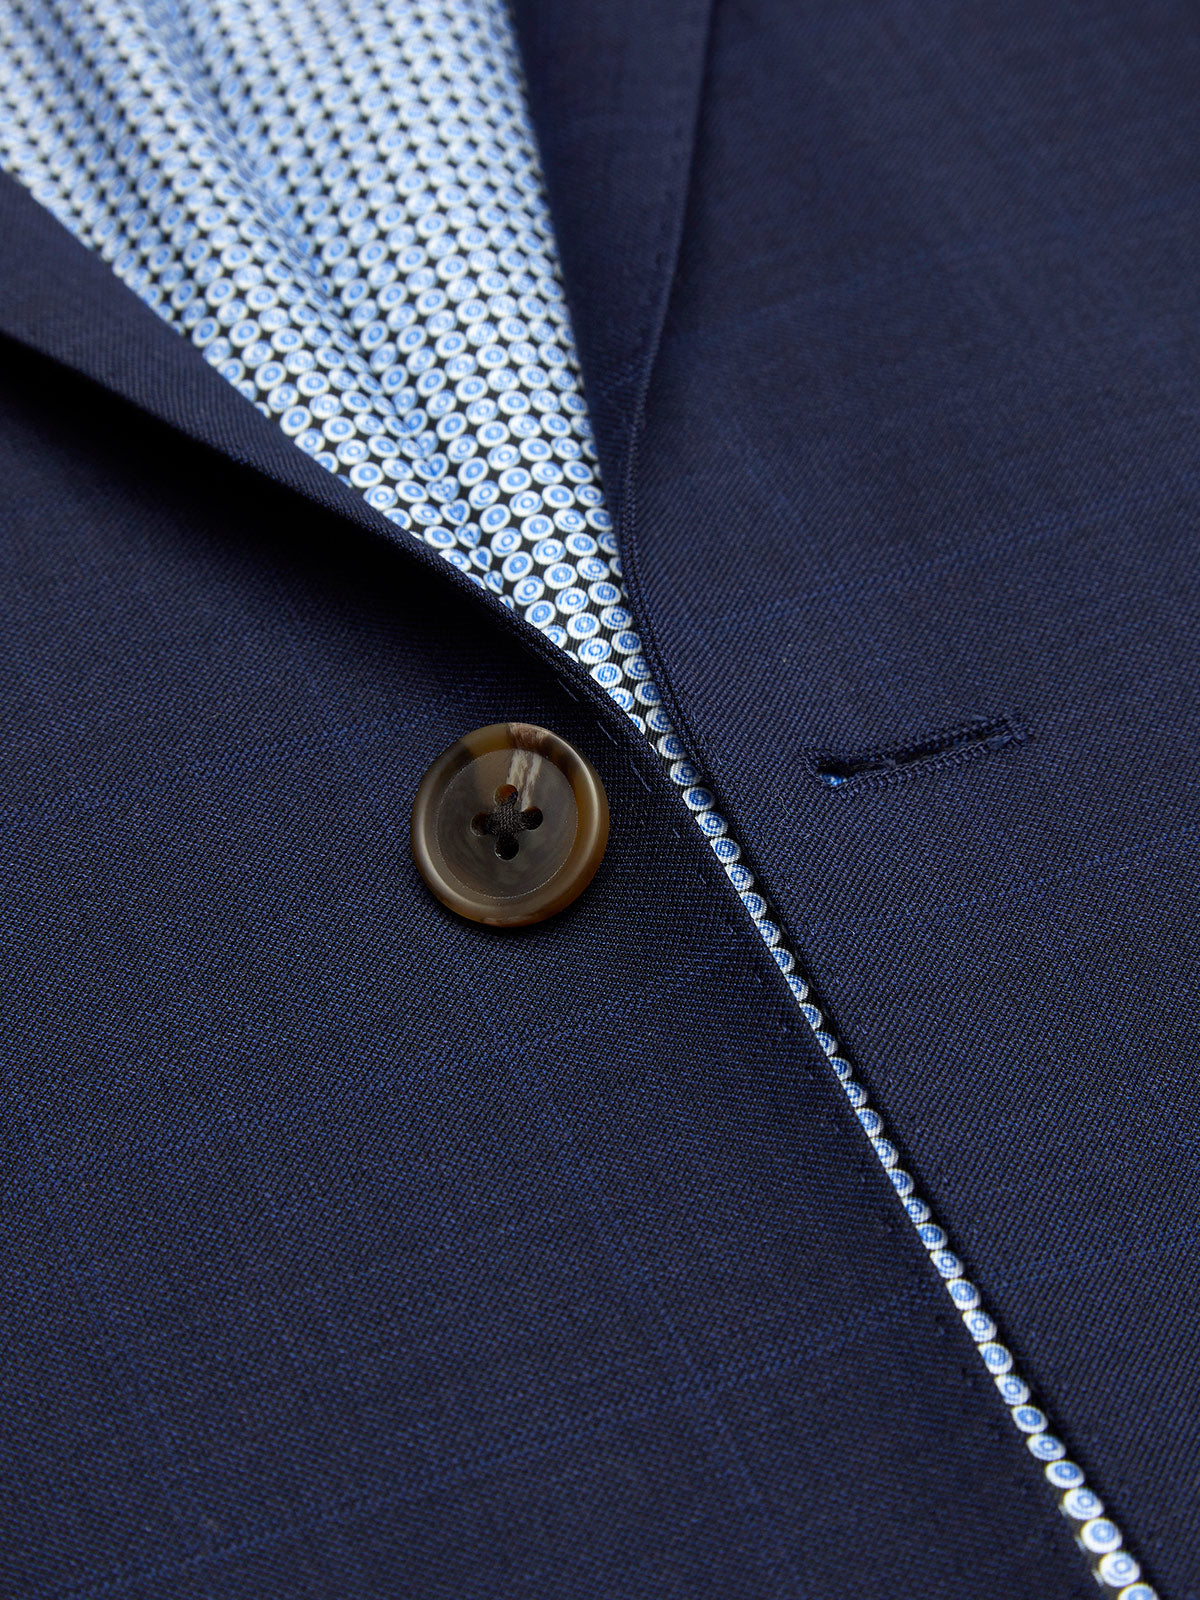 NEW HOPKINS WOOL BLEND SUIT JACKET NAVY